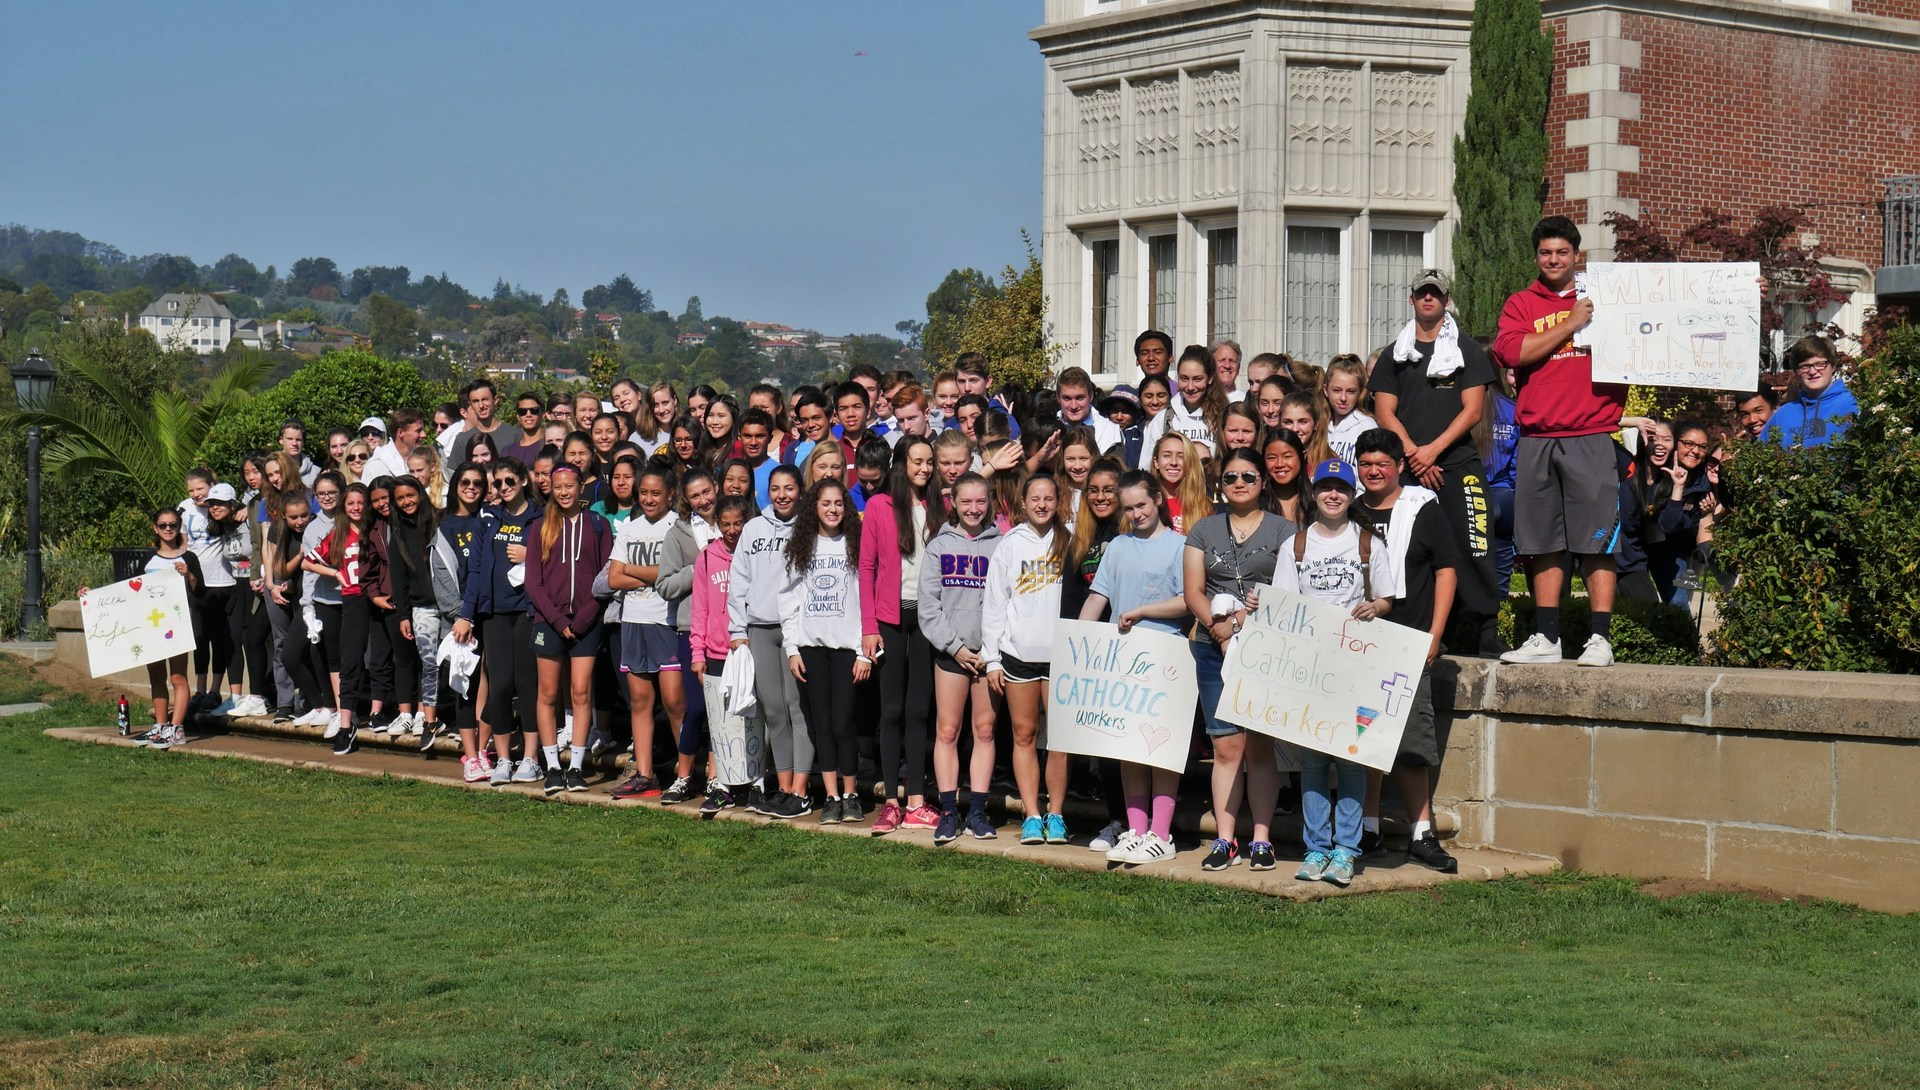 Students participating in the Tri-School Walk for Catholic Worker